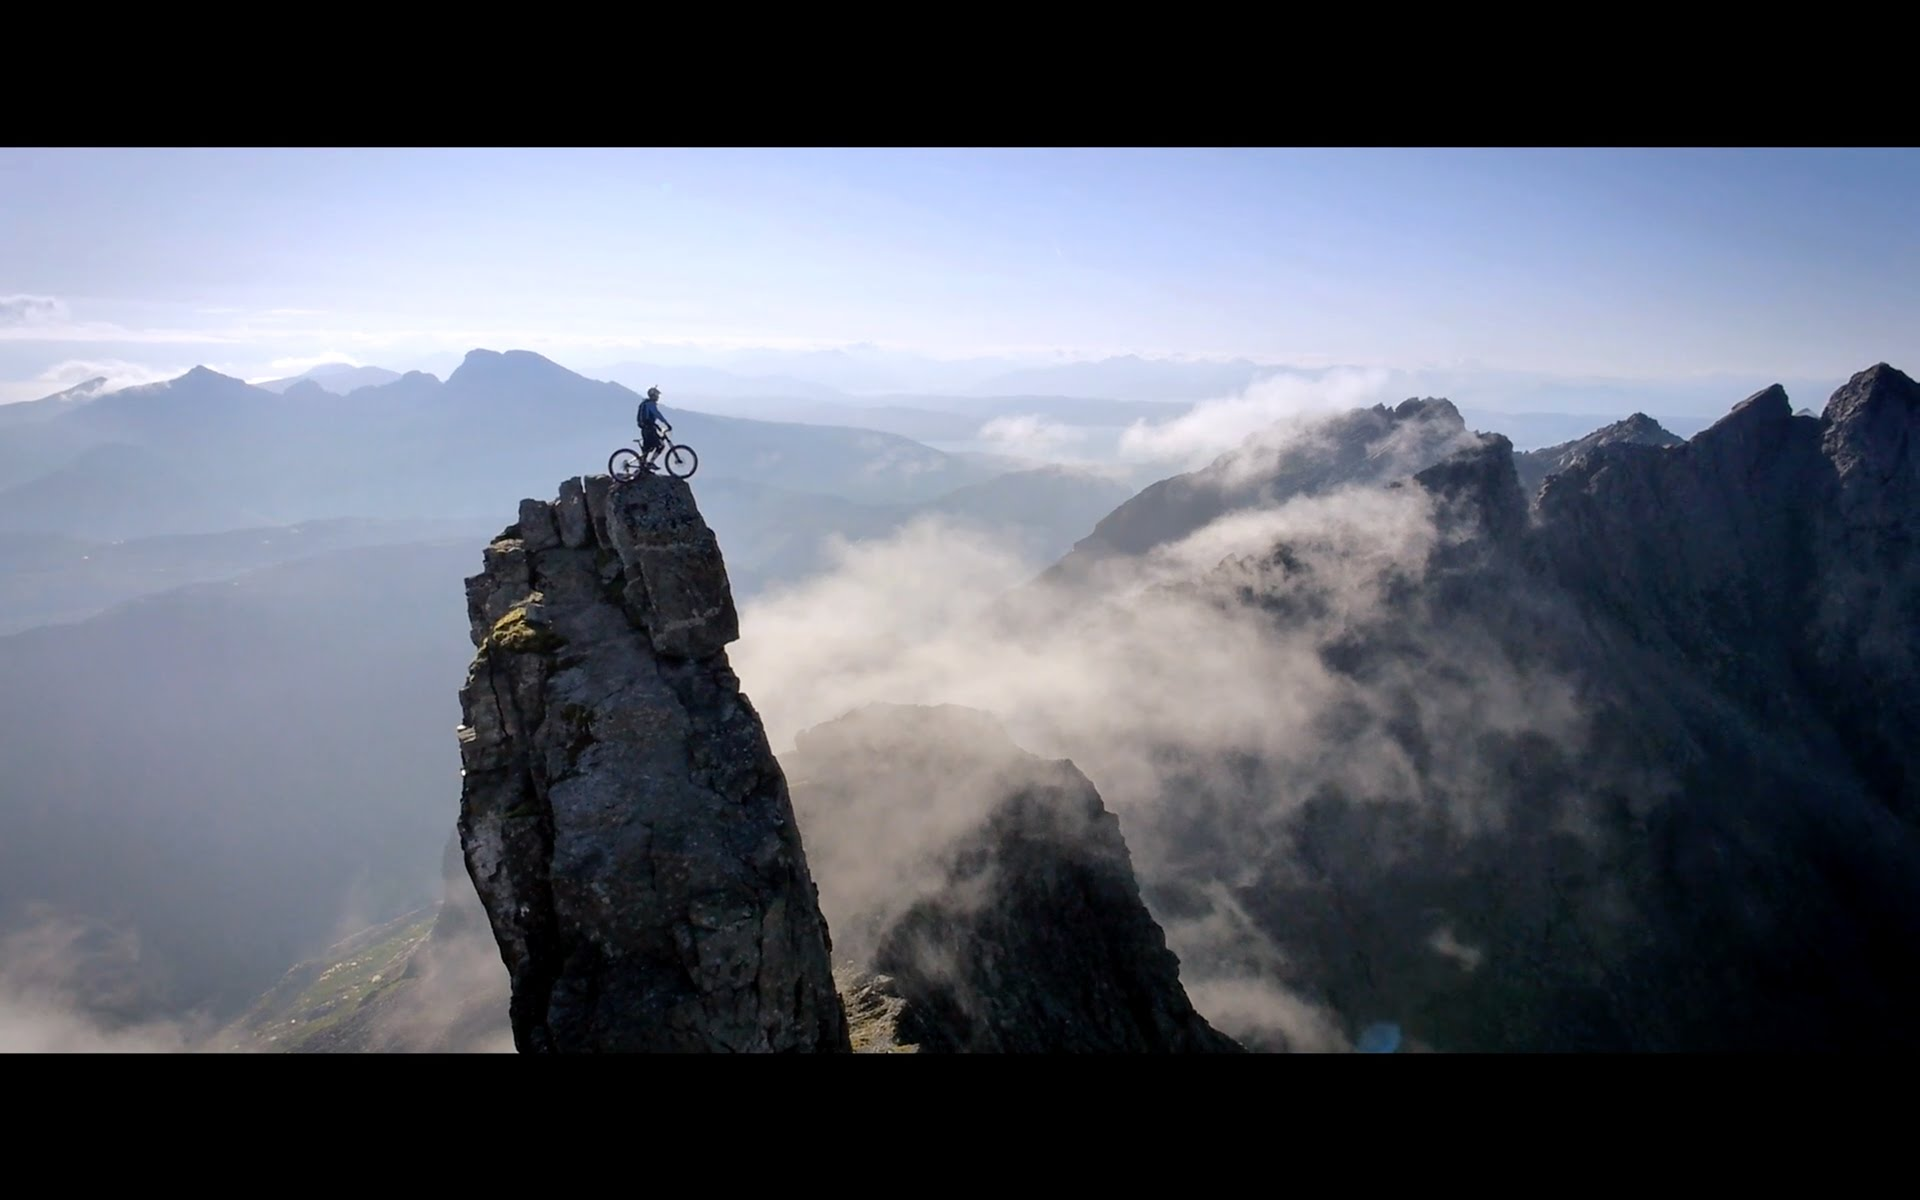 Danny macaskill the ridge lib magazine for Mountain watches